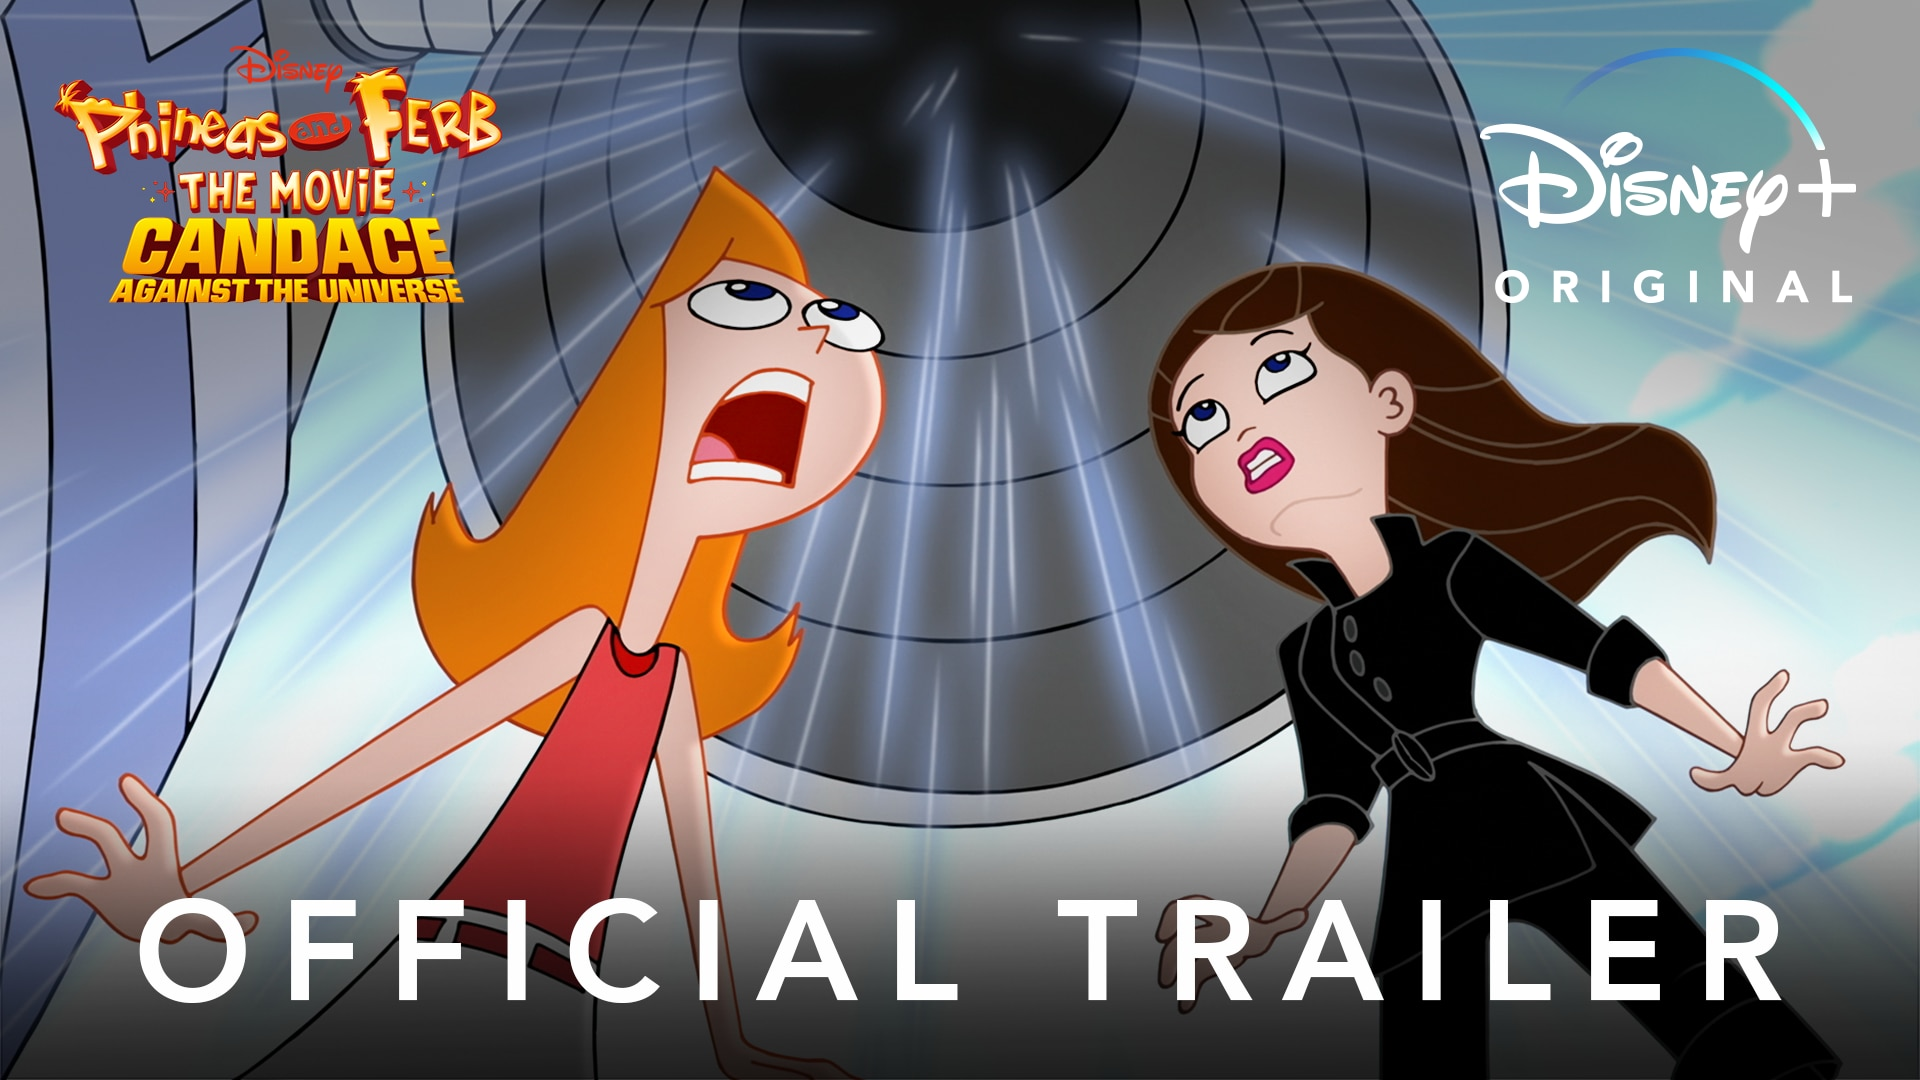 Phineas and Ferb The Movie: Candace Against the Universe | Official Trailer | Disney+